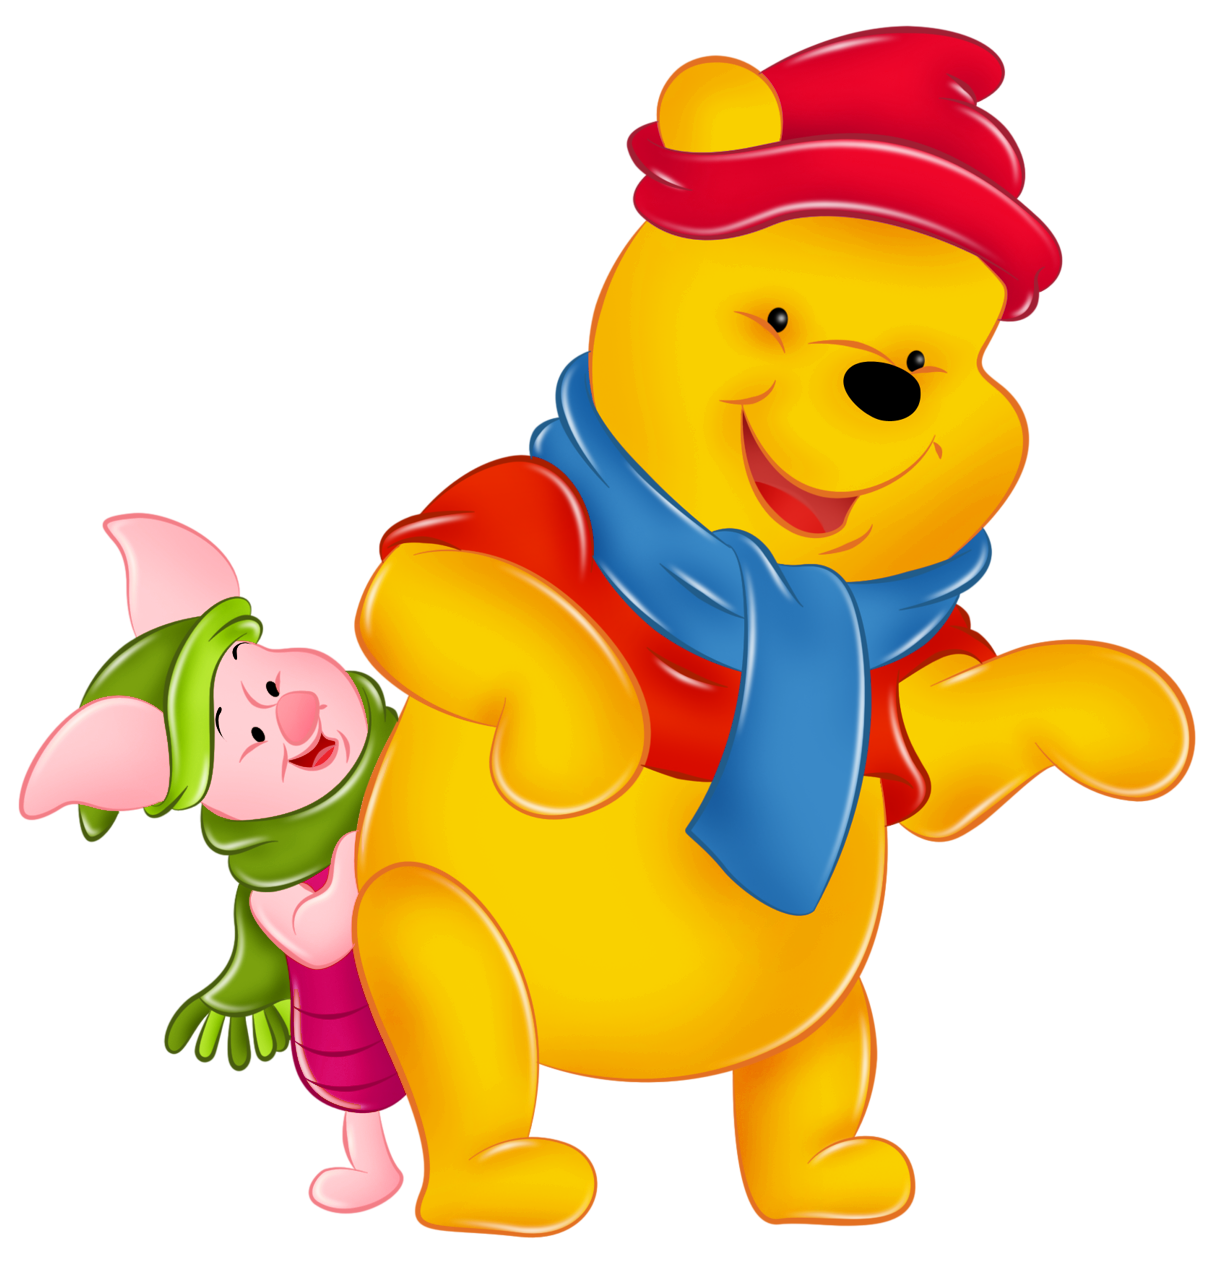 And piglet with hats. Winter clipart winnie the pooh